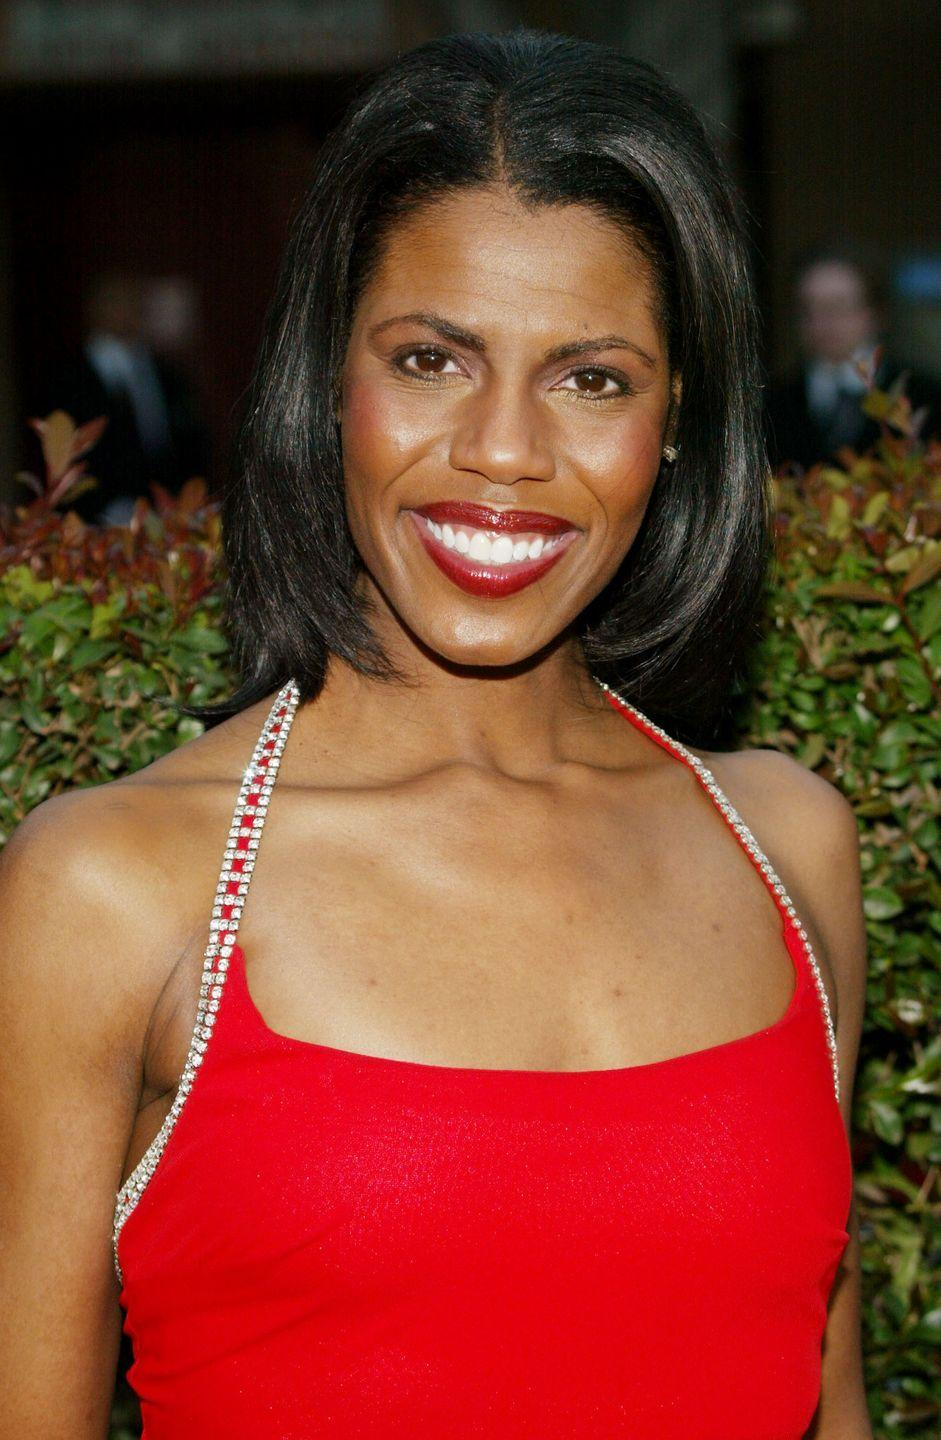 <p>Omarosa became the original reality TV villain following her appearance in season one of NBC's <em>The Apprentice </em>back in 2004. Throughout the following decade, the Ohio native showed up in numerous shows including <em>The Surreal Life</em> and <em>Fear Factor</em>. </p>